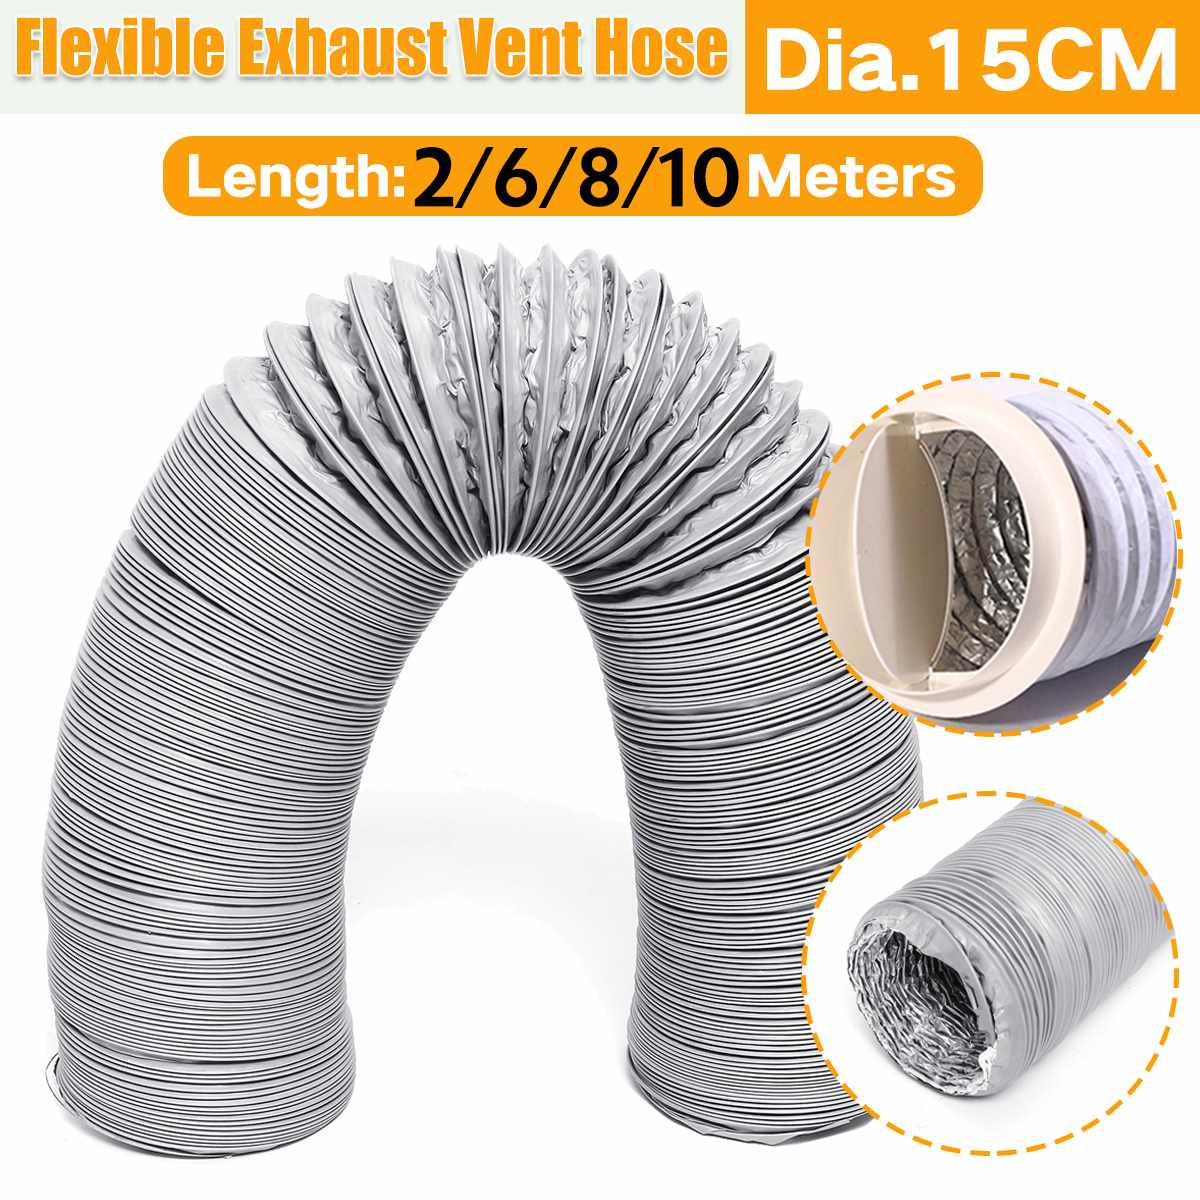 2/6/8/10 Meter Exhaust Pipe Flexible Air Conditioner Exhaust Pipe Vent Hose Duct Outlet 150mm Ventilation Duct Vent Hose